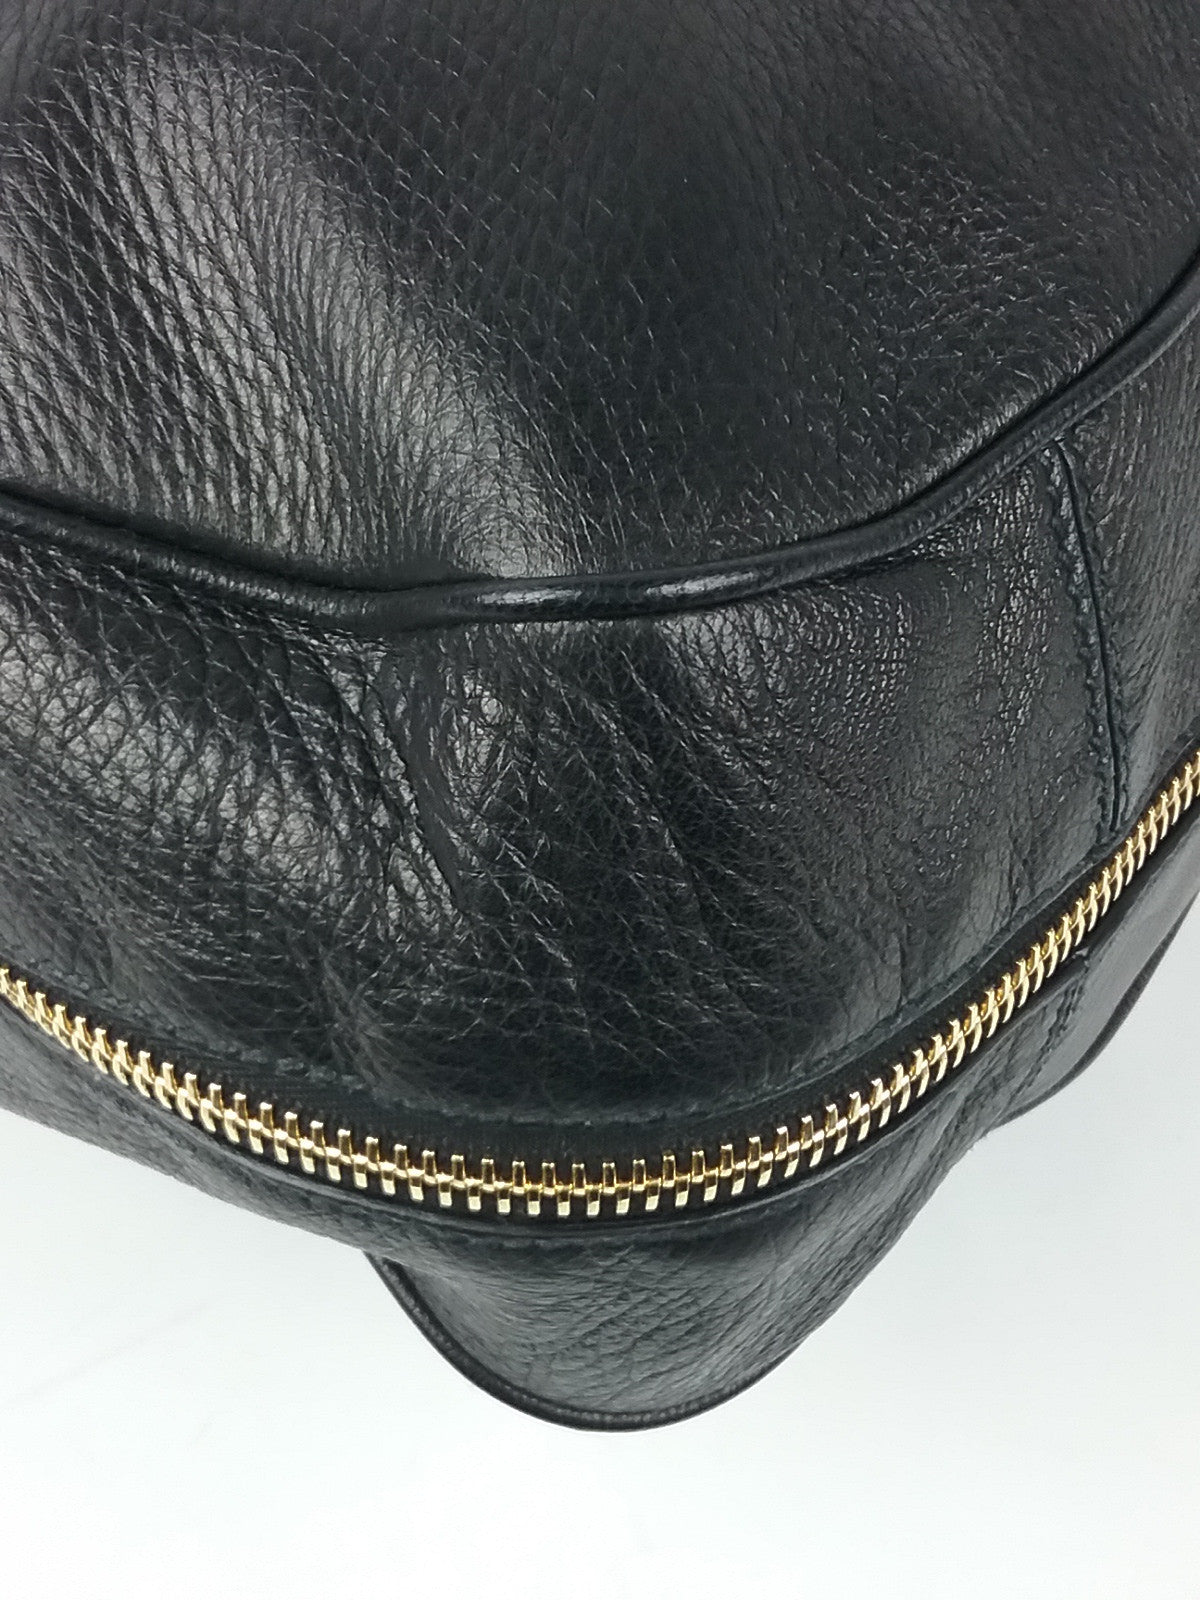 Black Leather Zip Around Hobo